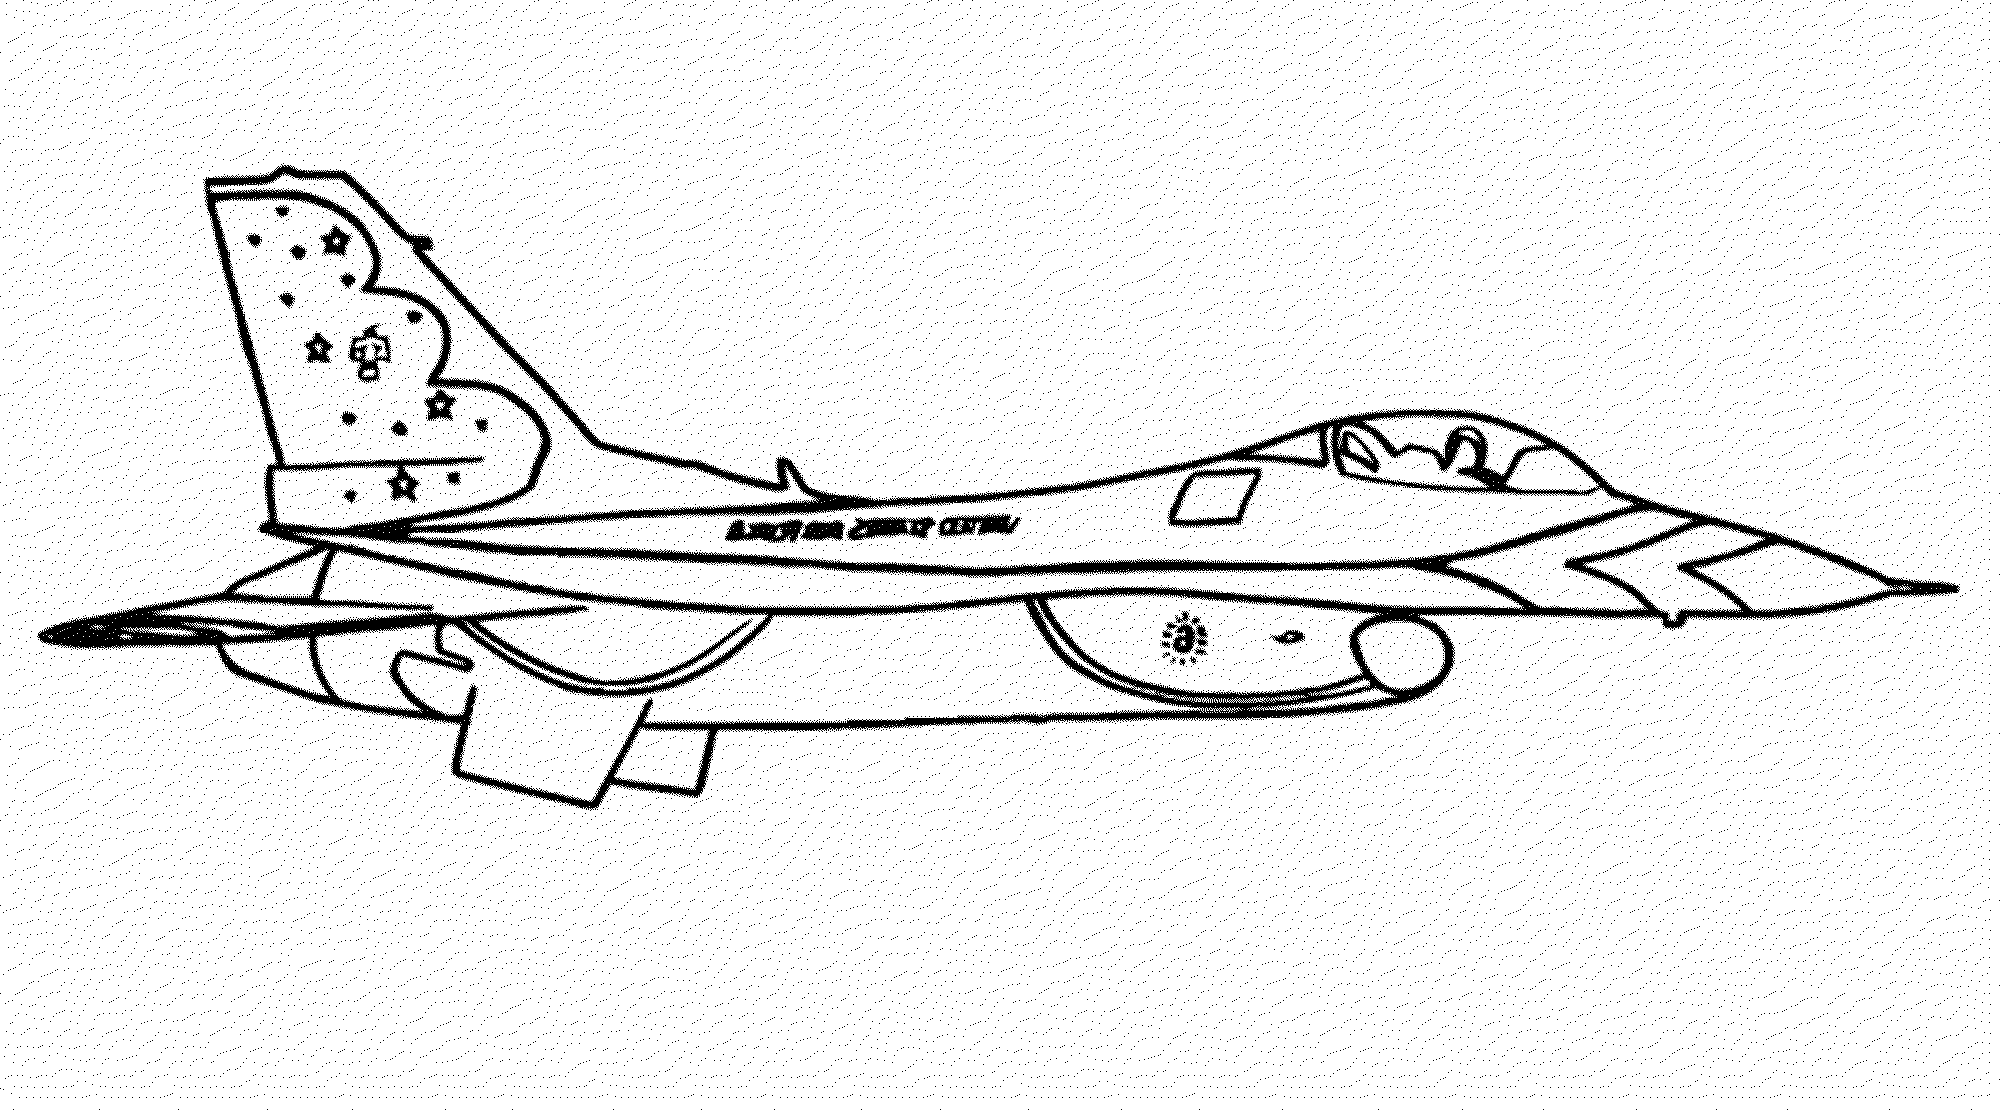 Army Airplane Coloring Pages